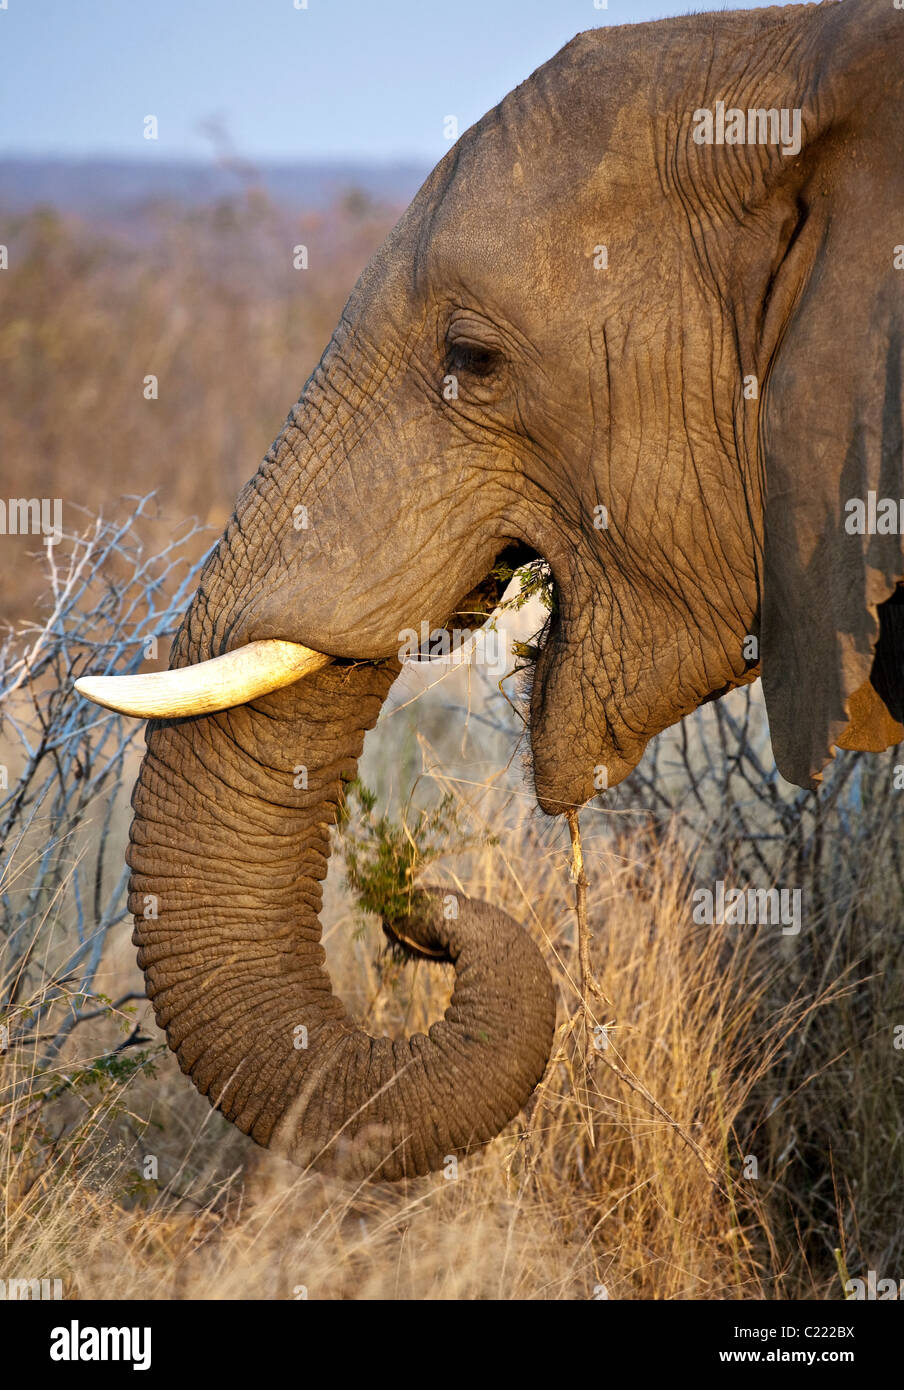 Lone Male Bull African Elephant, Loxodonta Africana eating grass and tree at end of day dusk - Stock Image